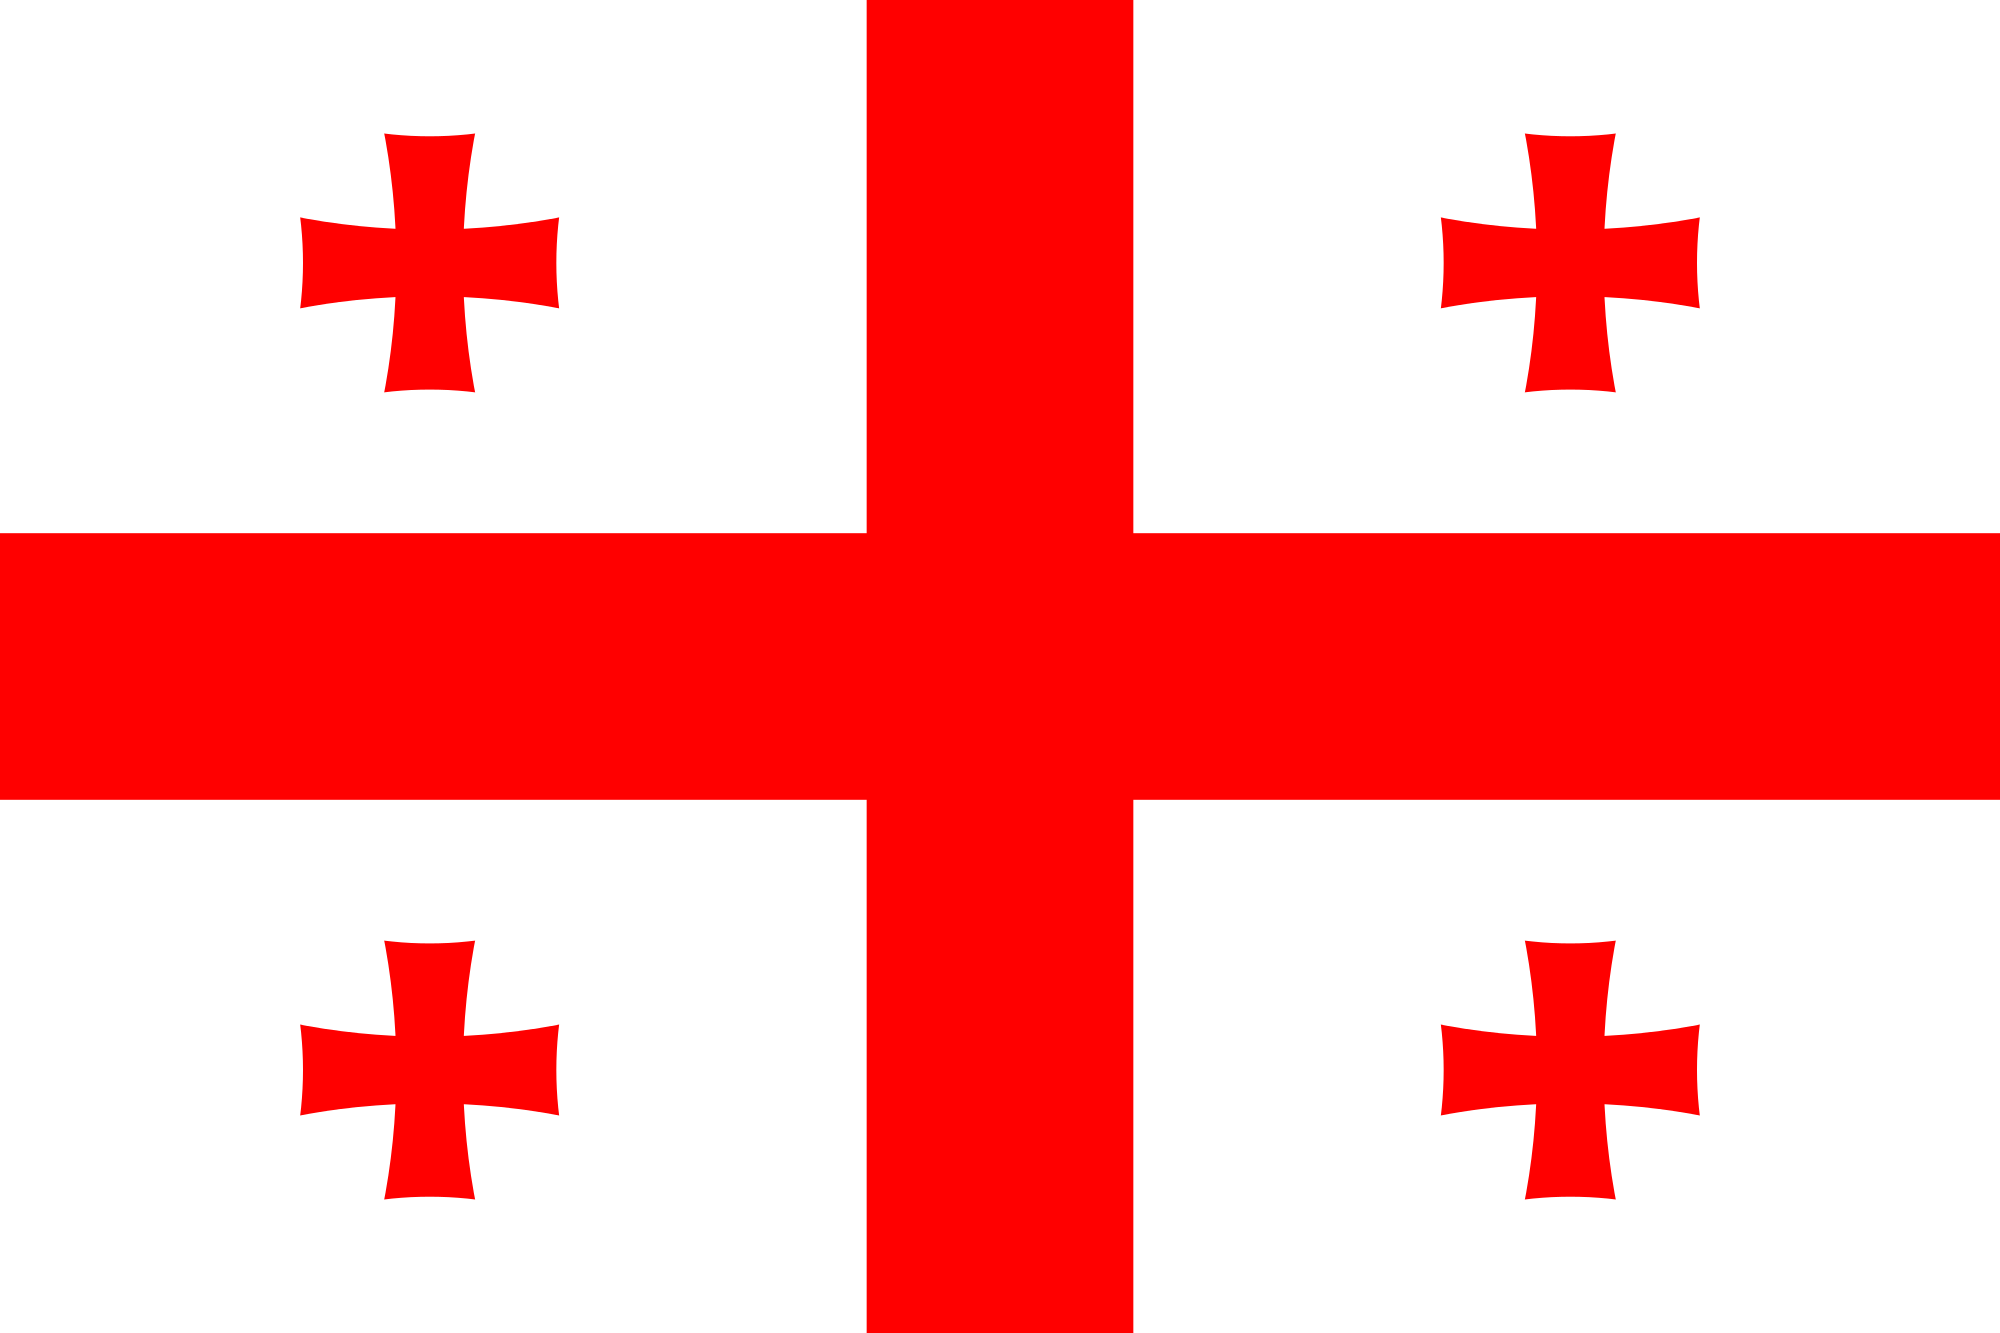 Svg flags georgia flag state. File of transparent background